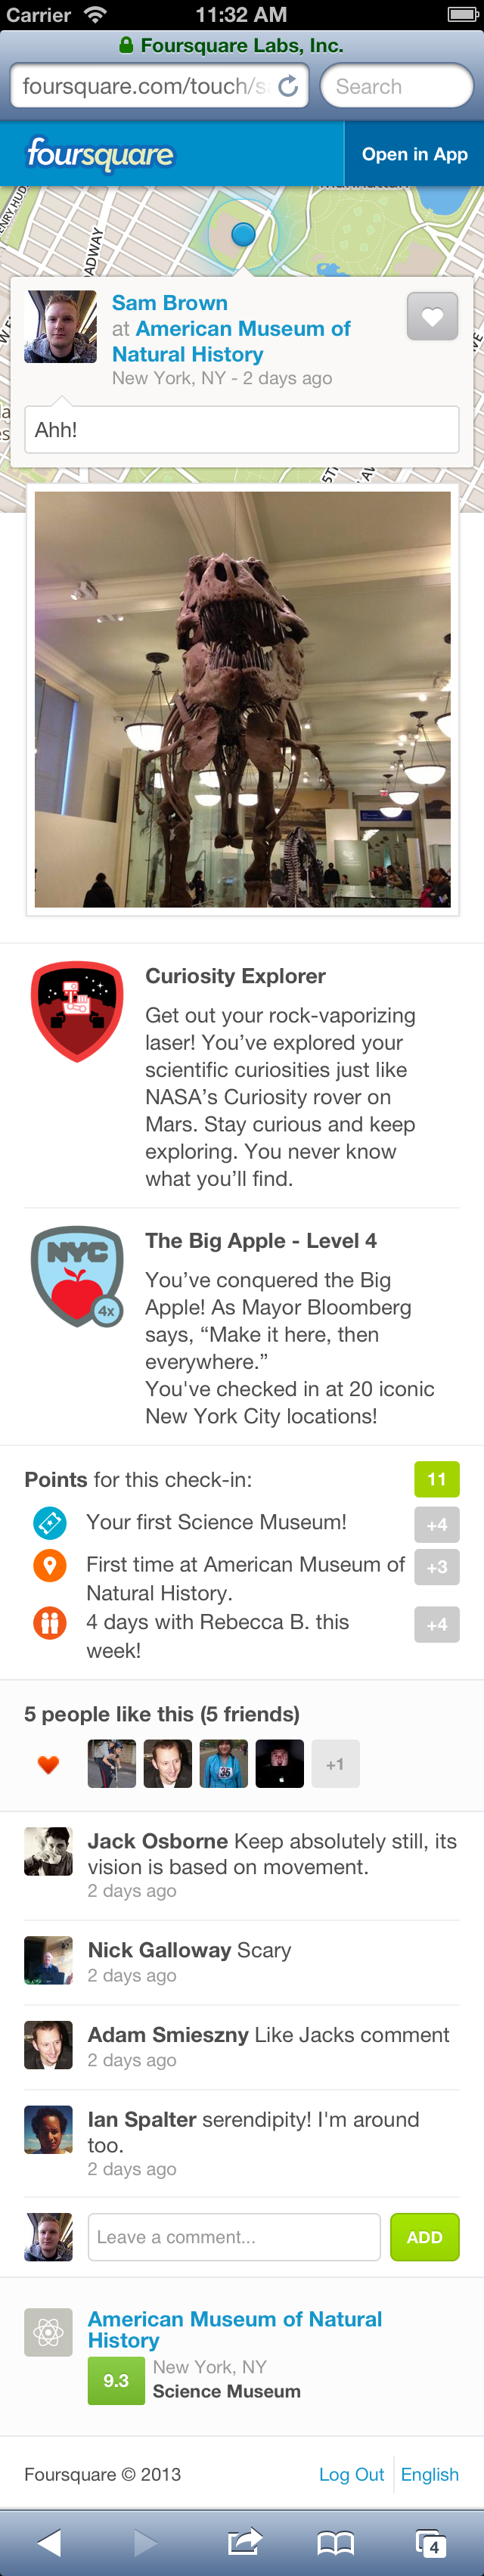 touchcheckindetails Foursquare launches new check in pages on mobile Web, revealing more details outside of the app